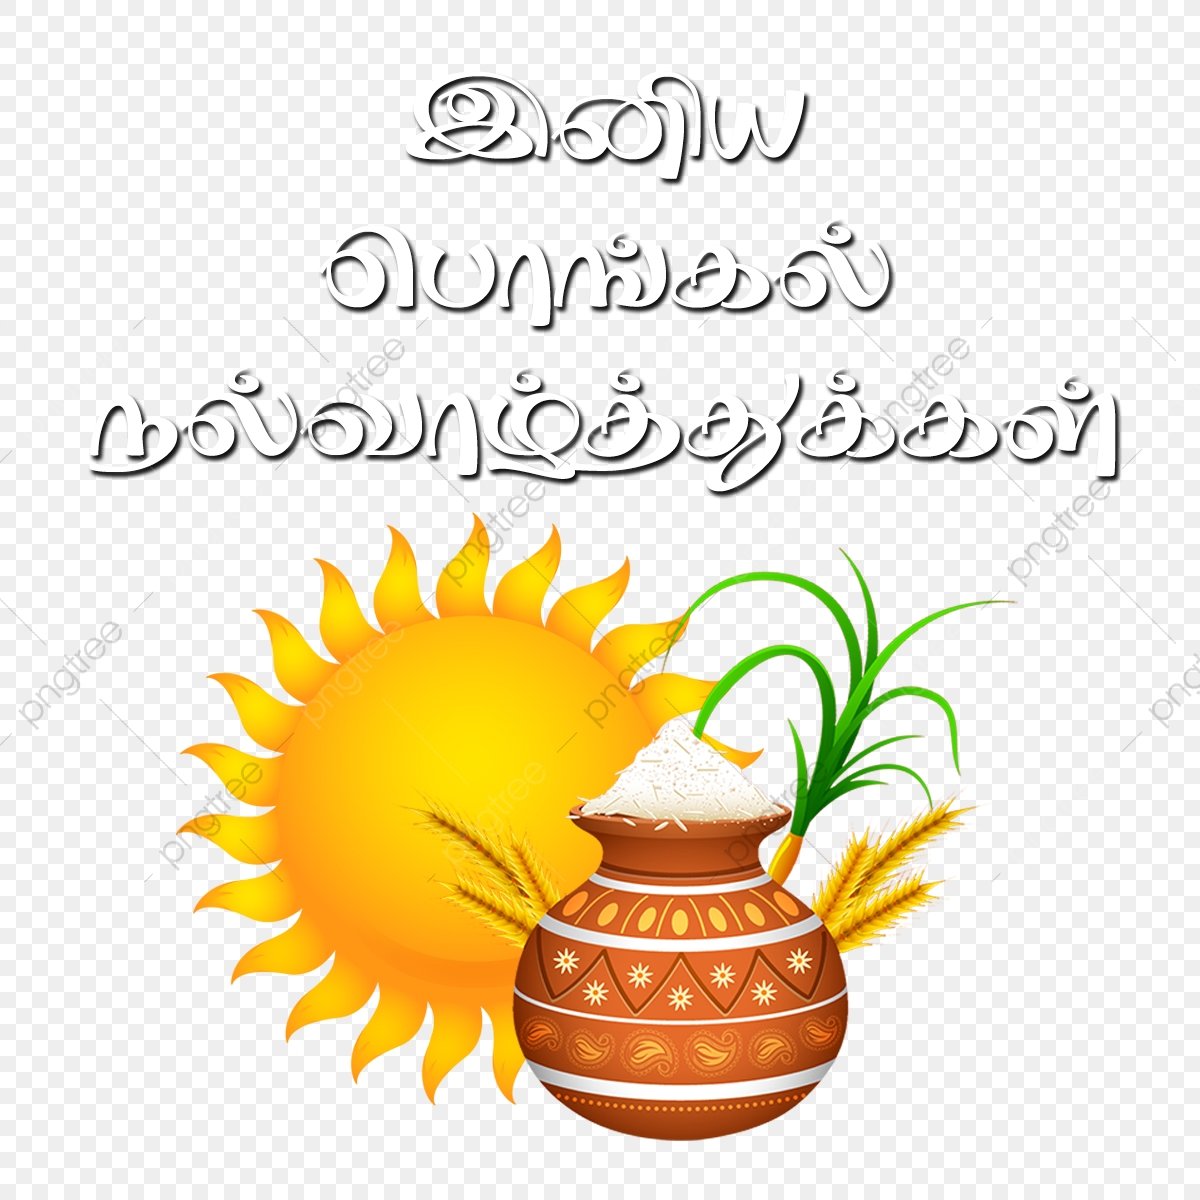 Happy Pongal In Tamil Text, Happy Pongal, Pongal Festival, Tamil.